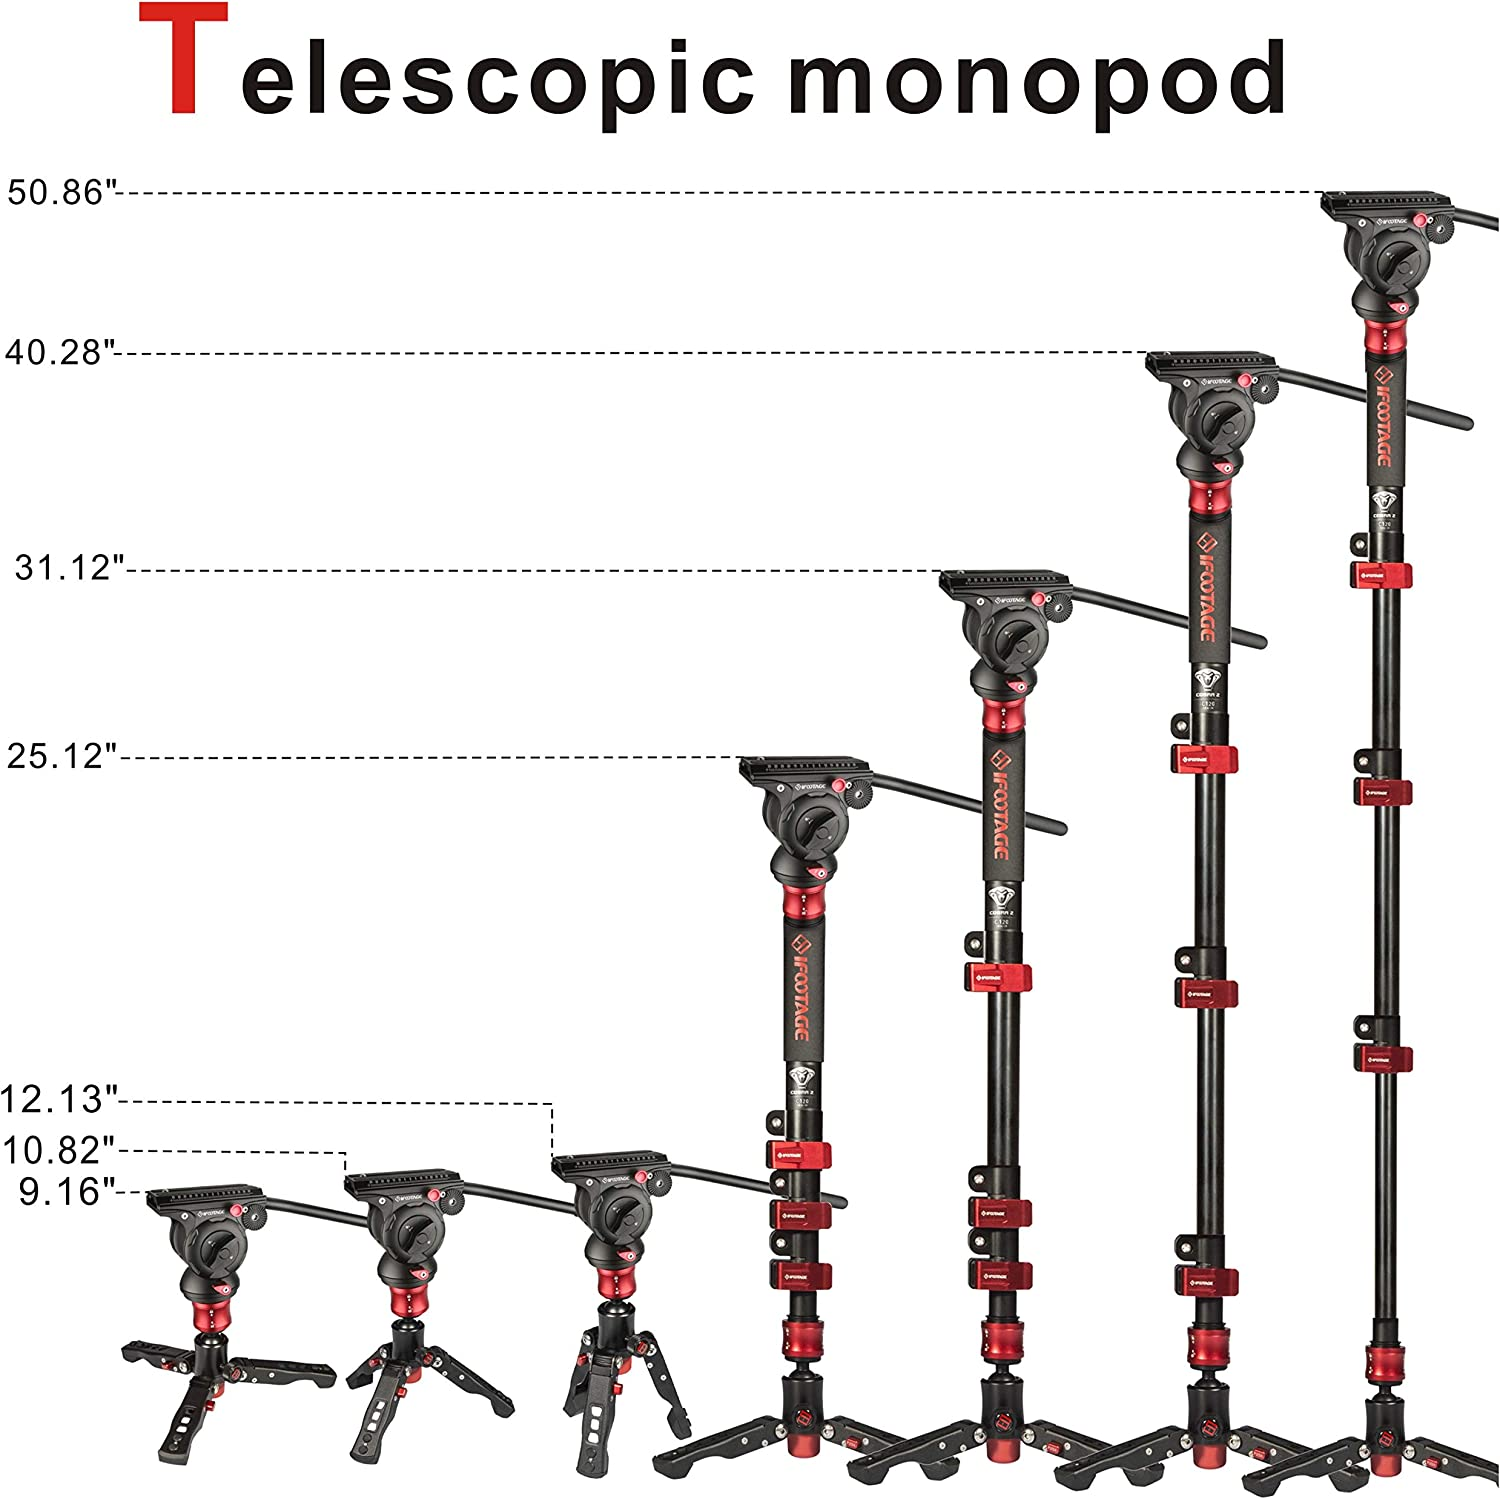 Professional 47 Carbon Fiber Monopod Leg with Feet for DSLR Camera Camcorders IFOOTAGE Camera Monopod with Video Head